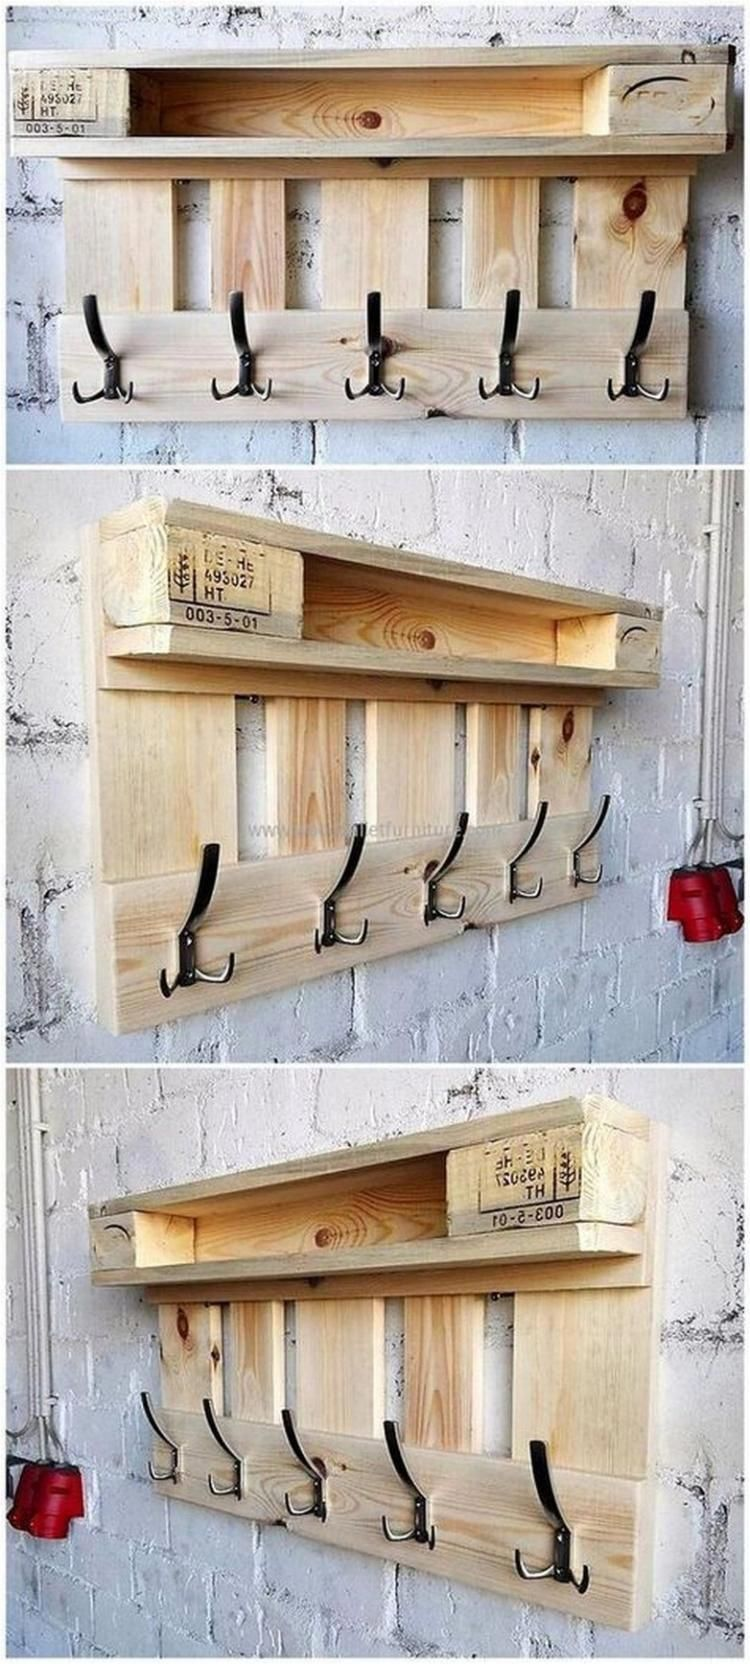 Wood Projects That Make Money Small and Easy To Build and